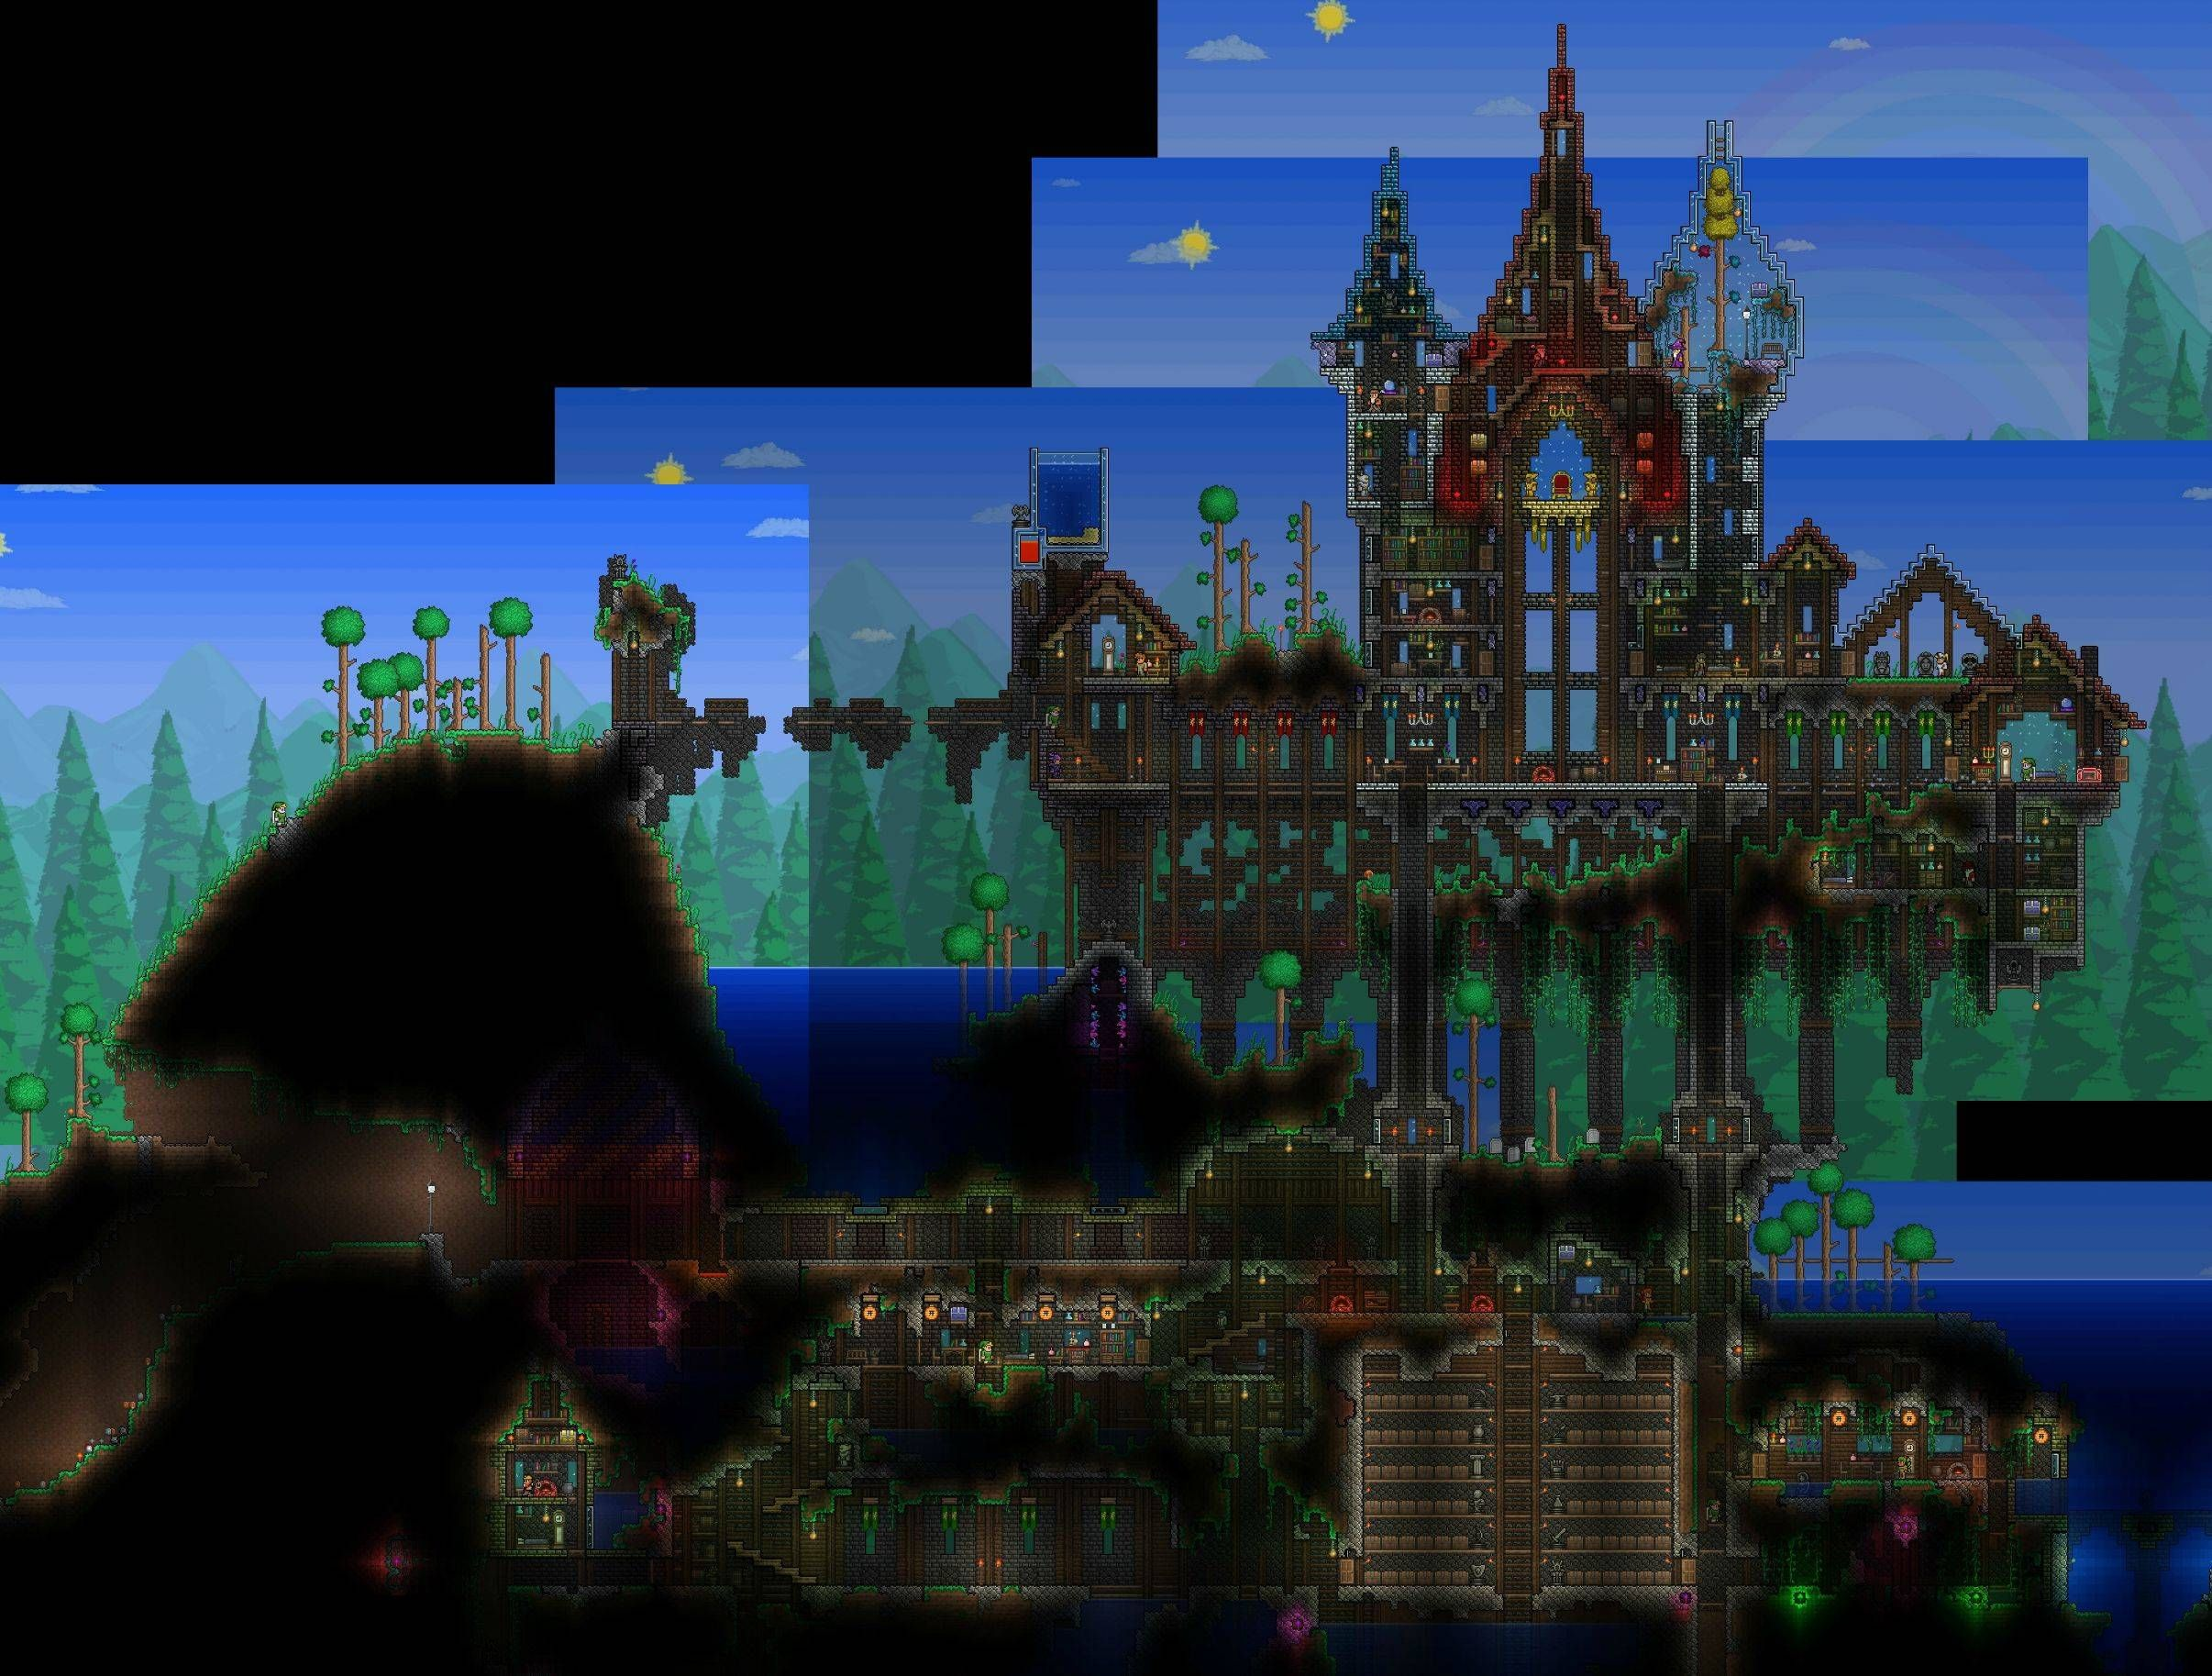 Terraria castle tower castle tower any tips terraria - After A Year Or So Work On And Off My Little Home Is Finished